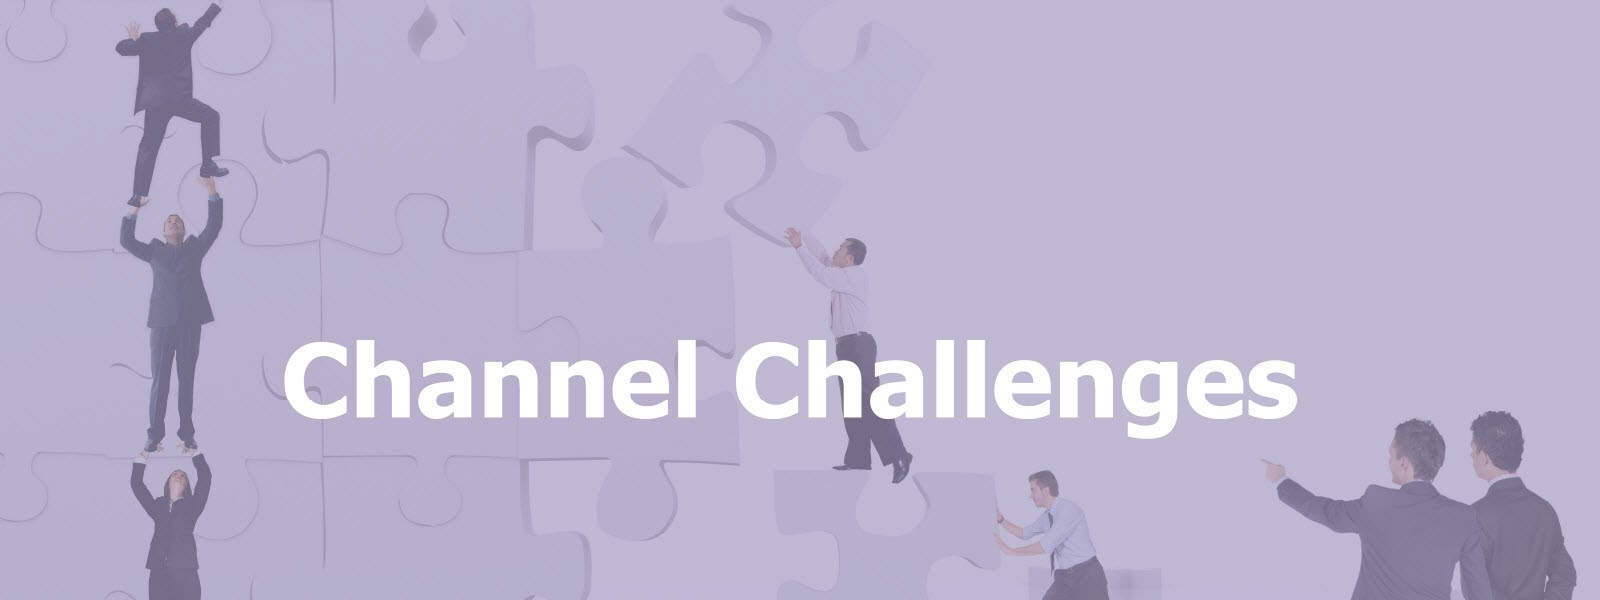 Channel Challenges Discussion with Channel Expert Jan De Bondt